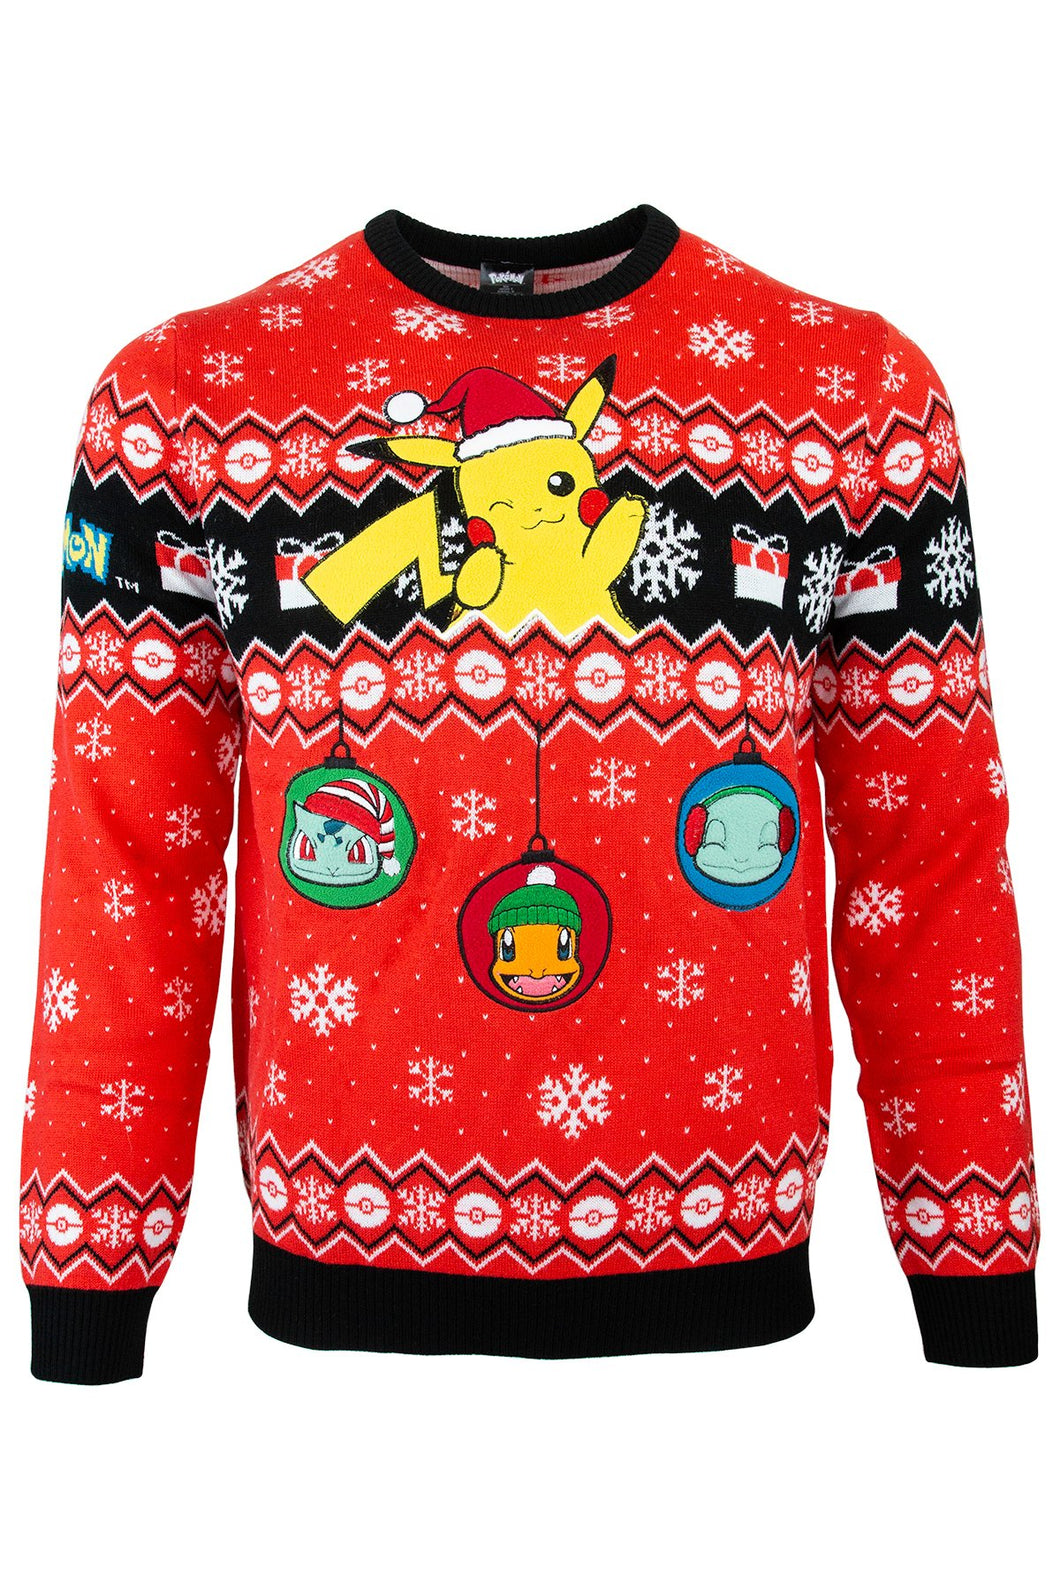 Pikachu Ugly Christmas Sweater